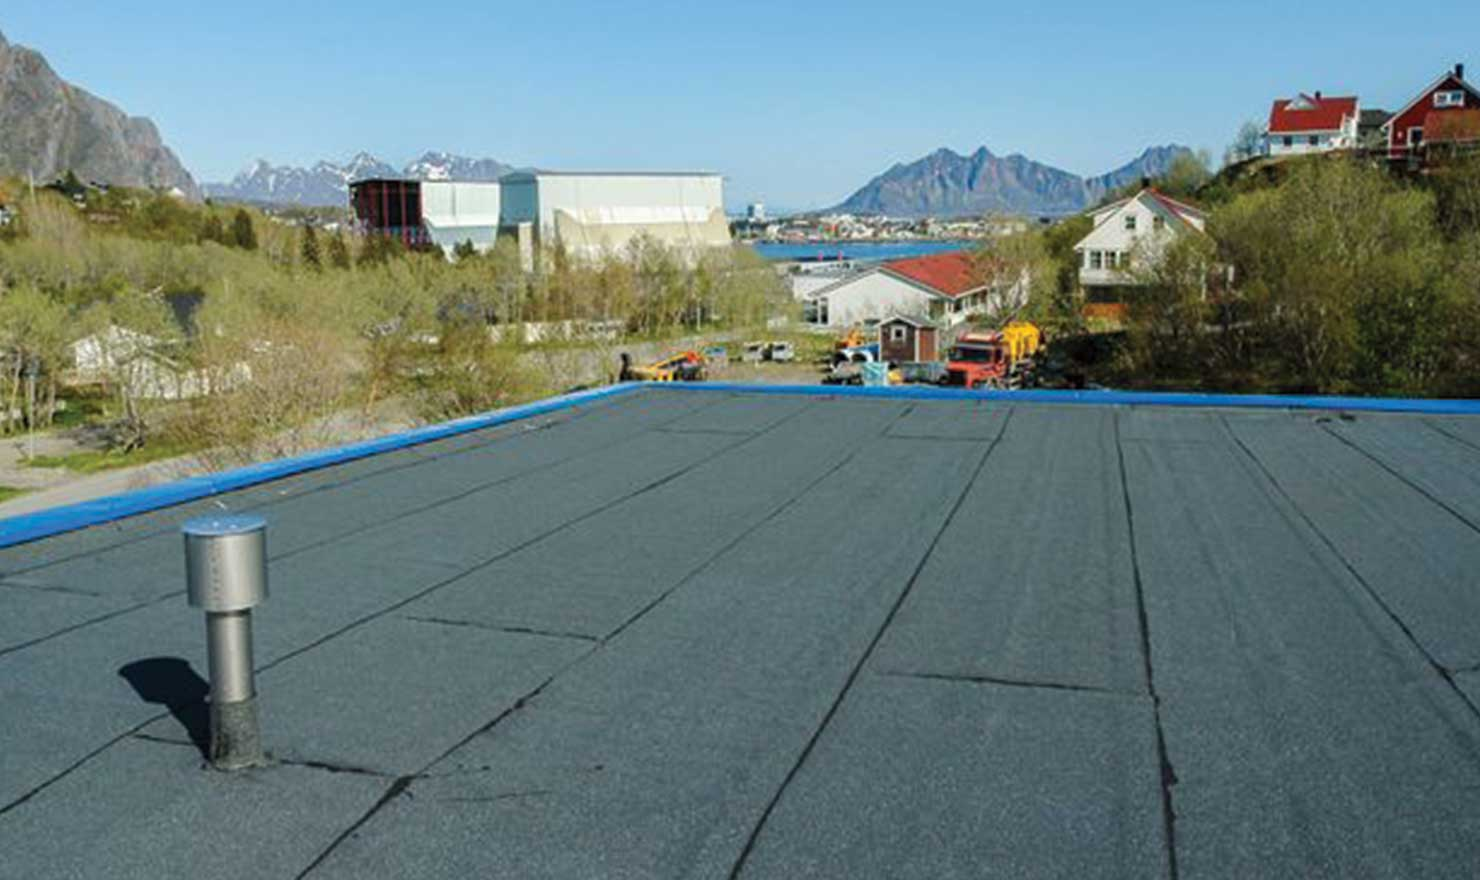 Reroofing Contractor in edmonton by MD Roofing - repaired commercial roofing